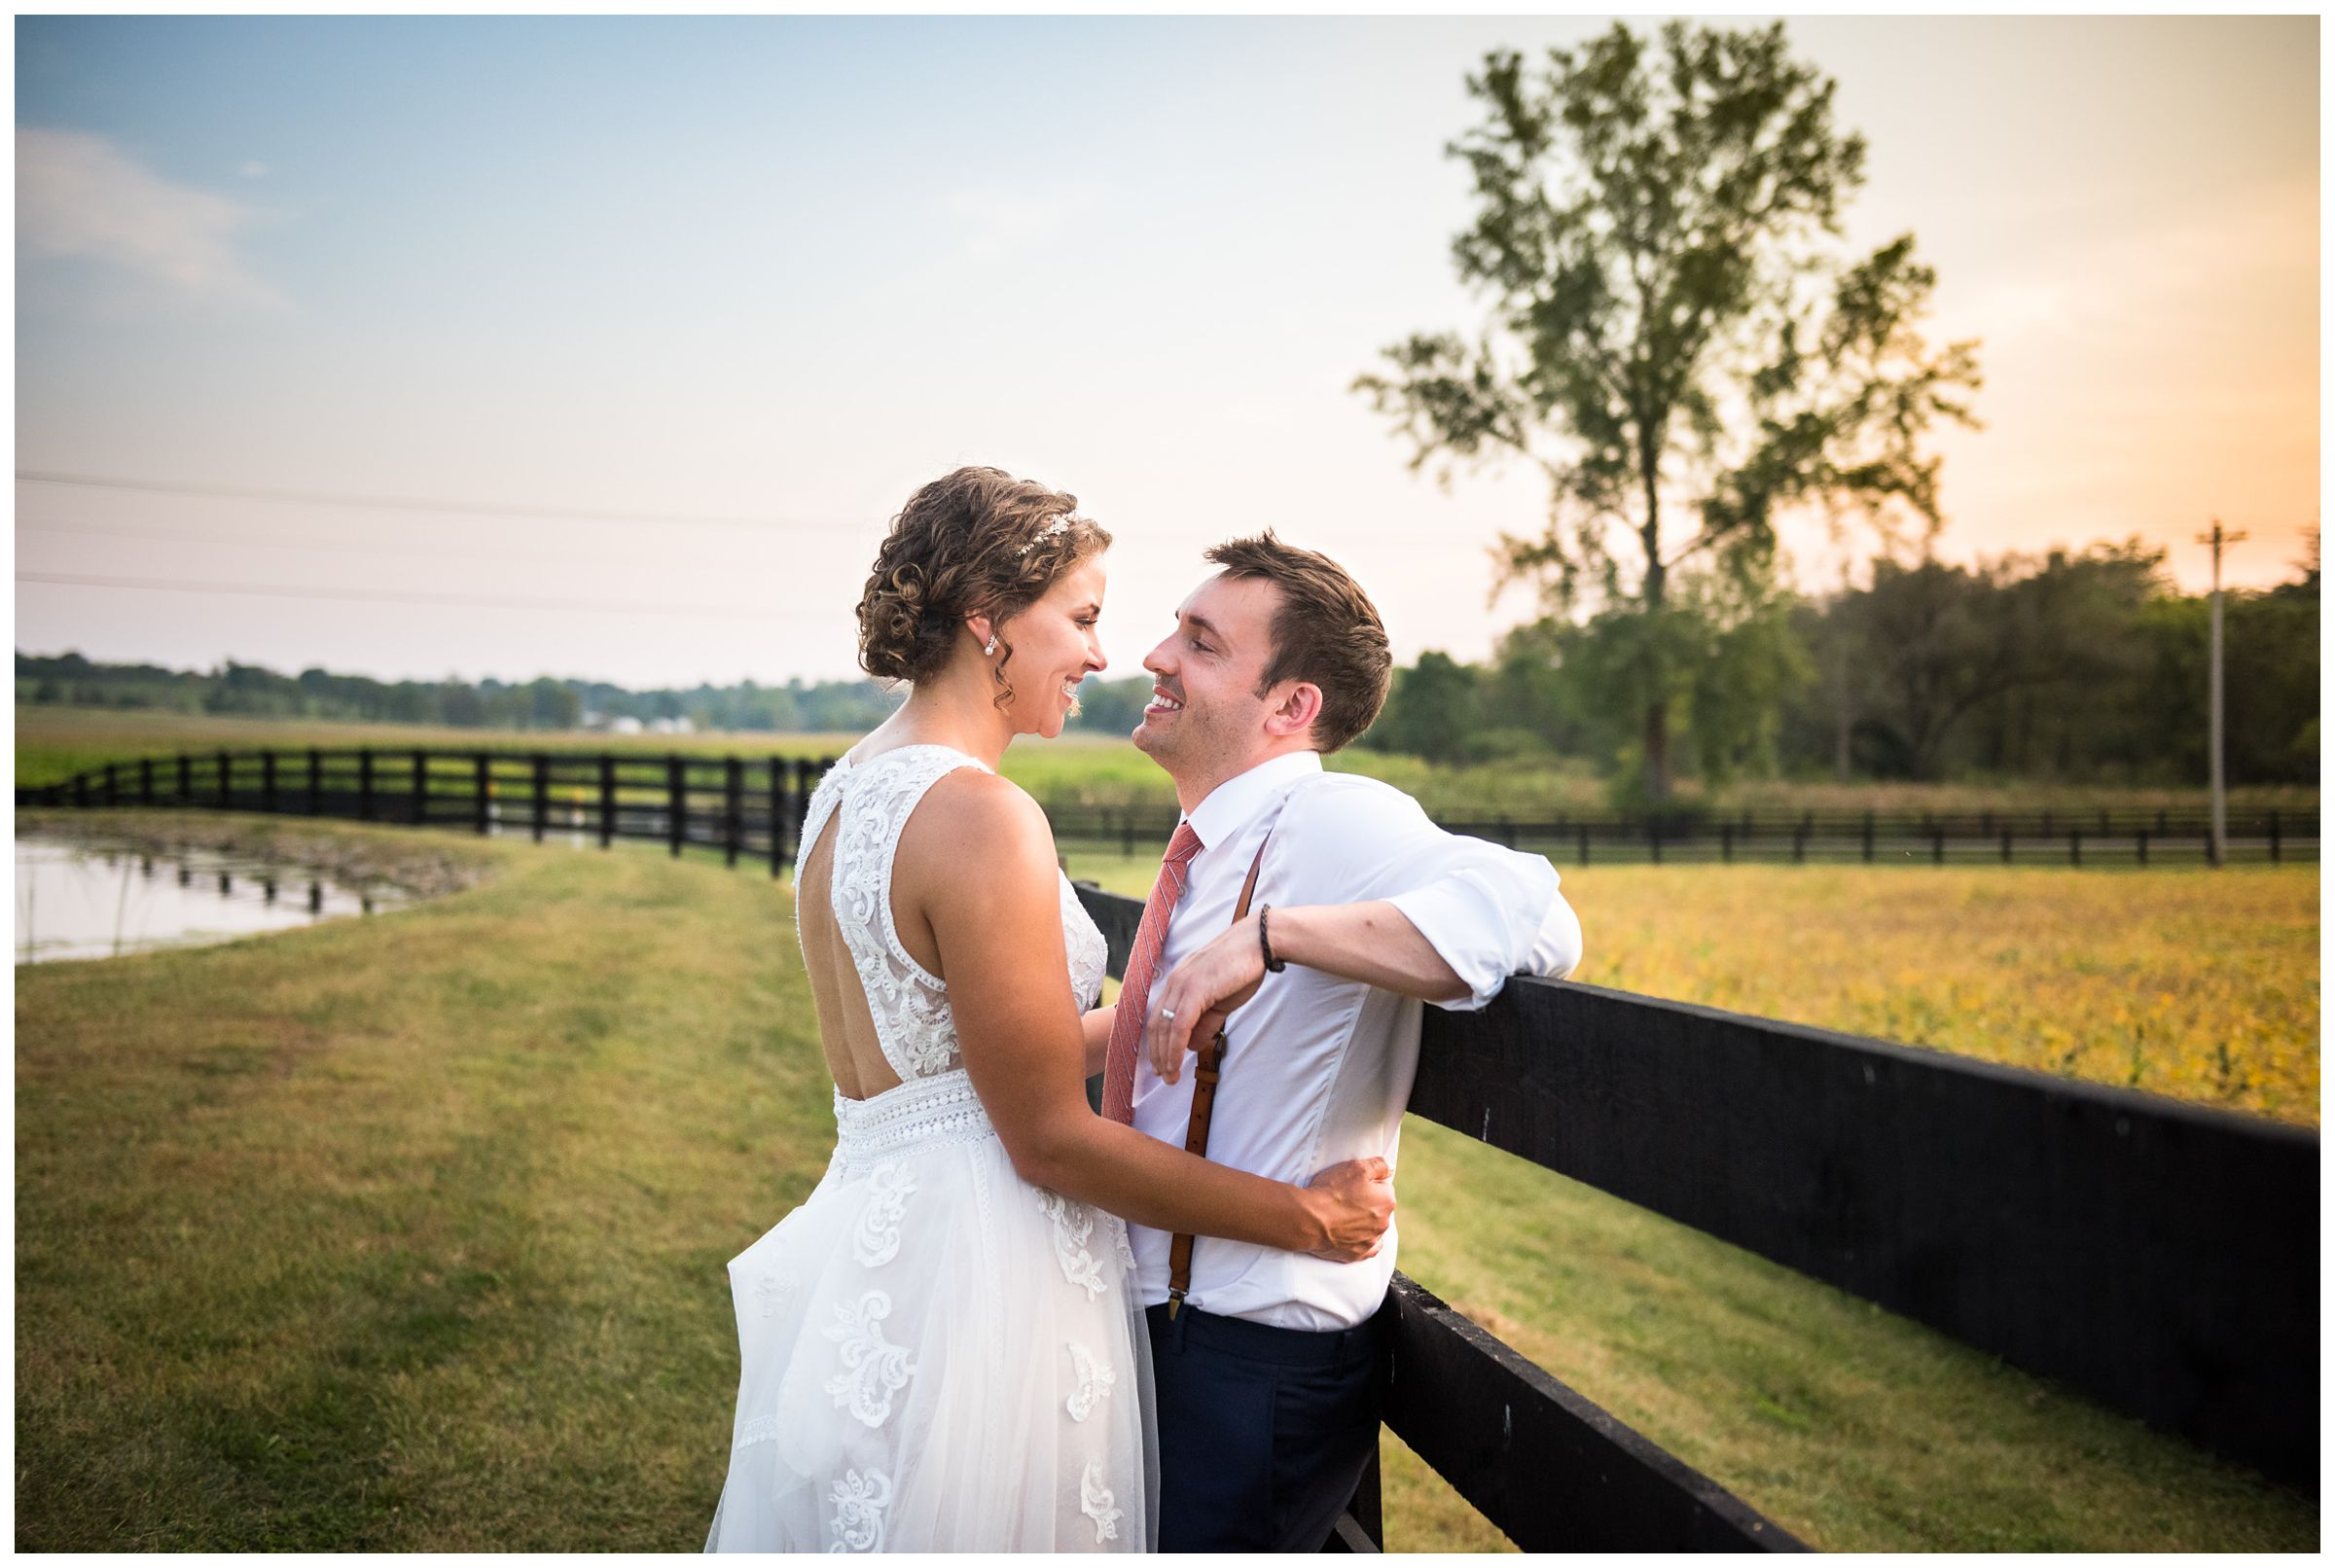 bride and groom portrait at sunset during rustic barn wedding captured by Lancaster Ohio wedding photographer